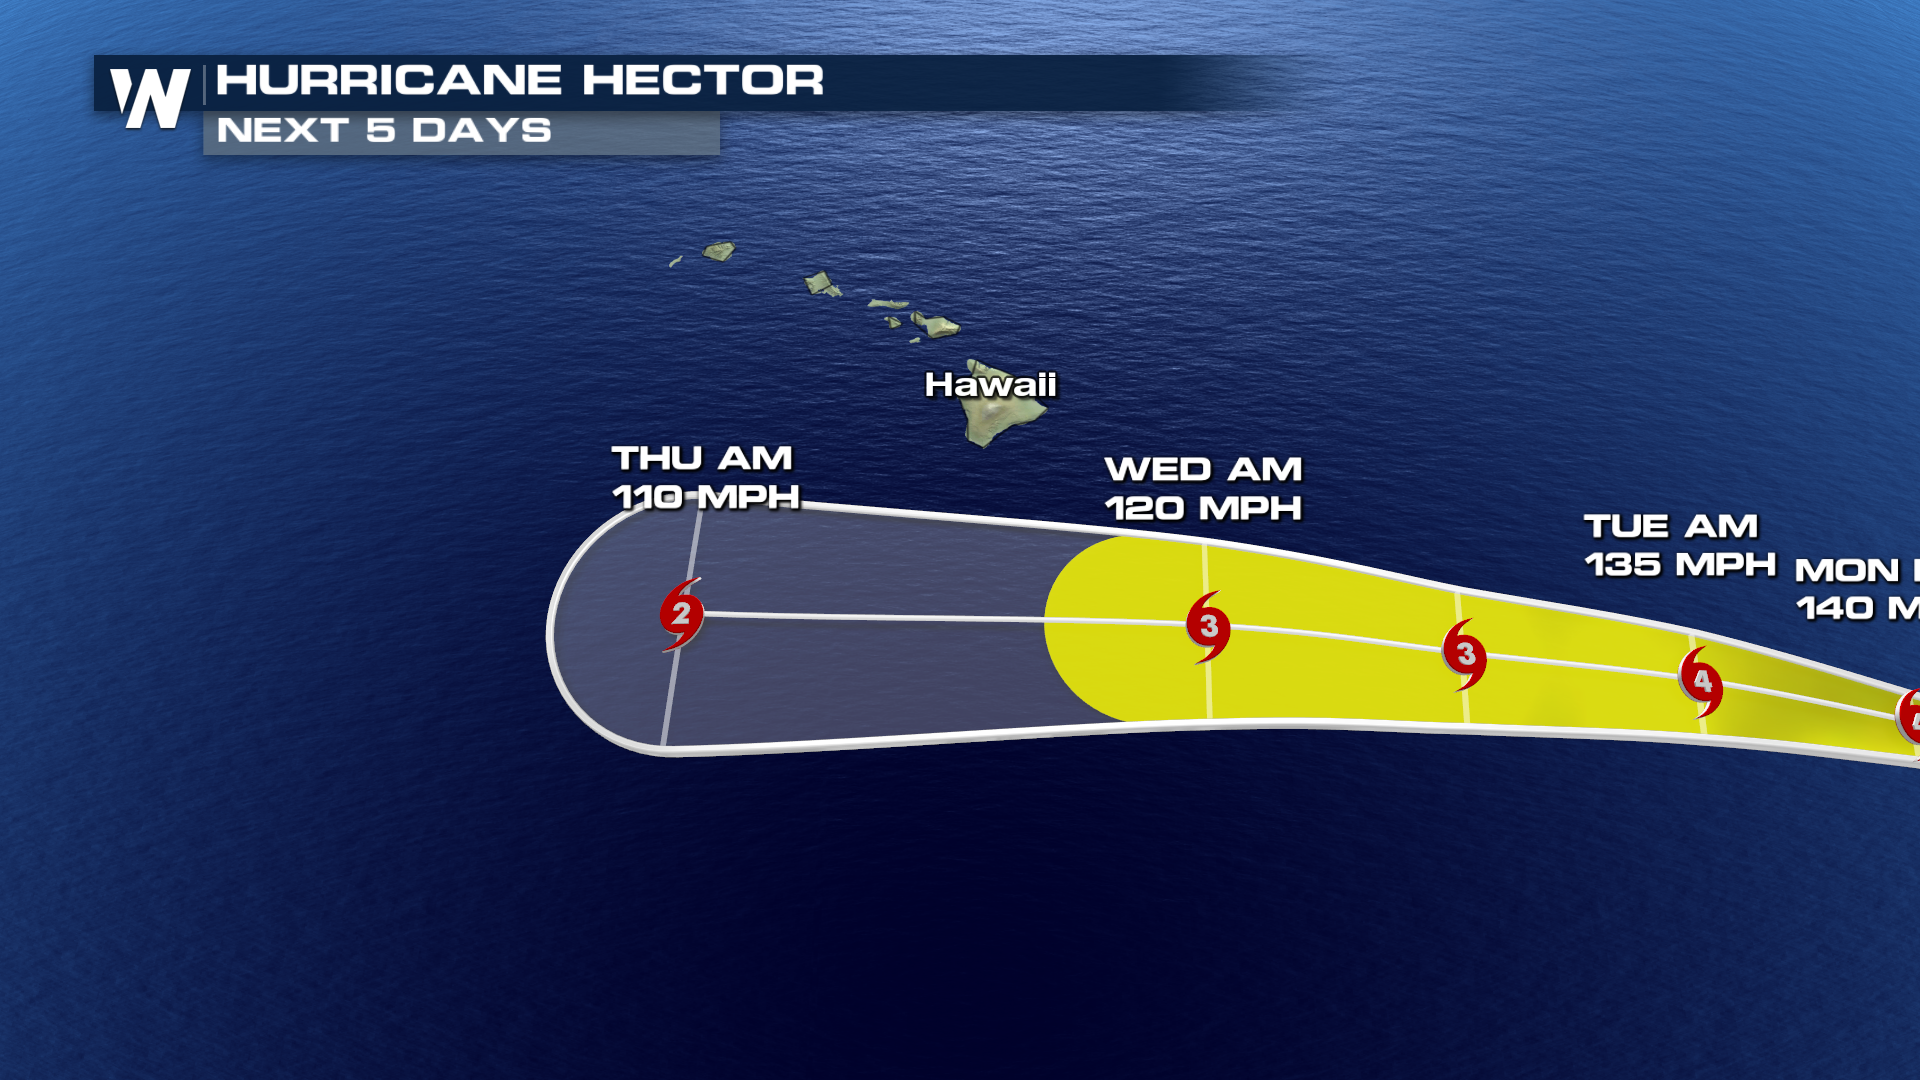 A Look at Possible Impacts for Hawaii From Hector